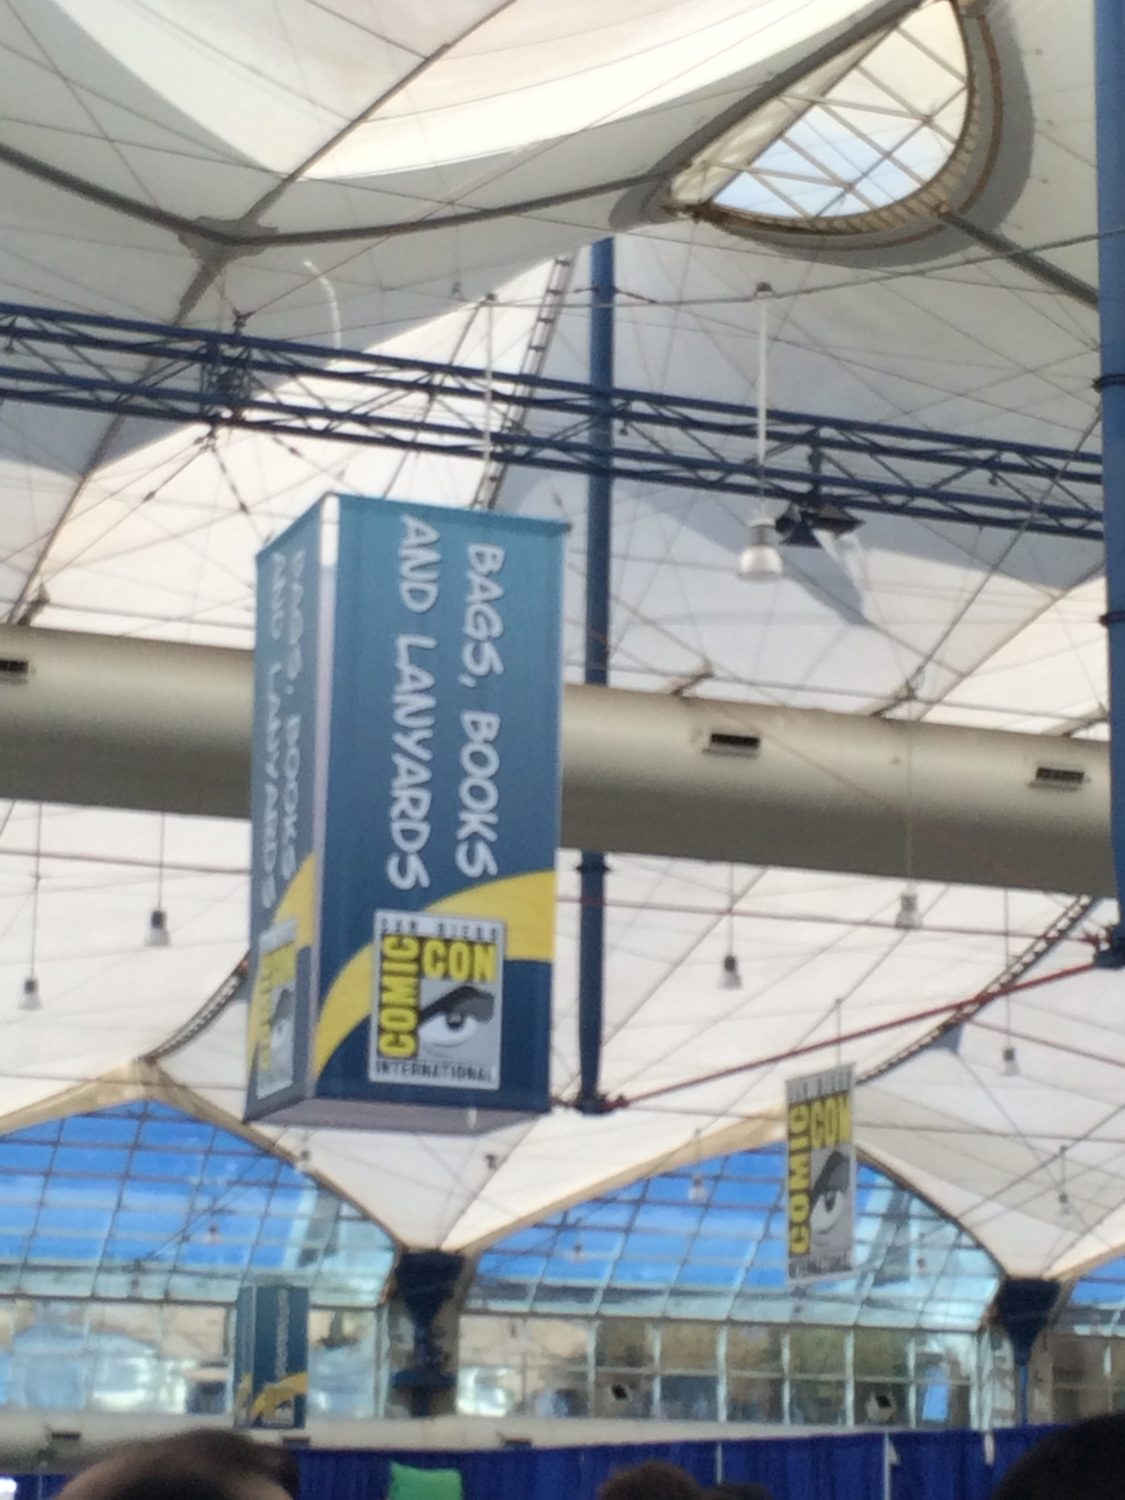 San Diego Comic Con 2016 Bag and lanyard pickup